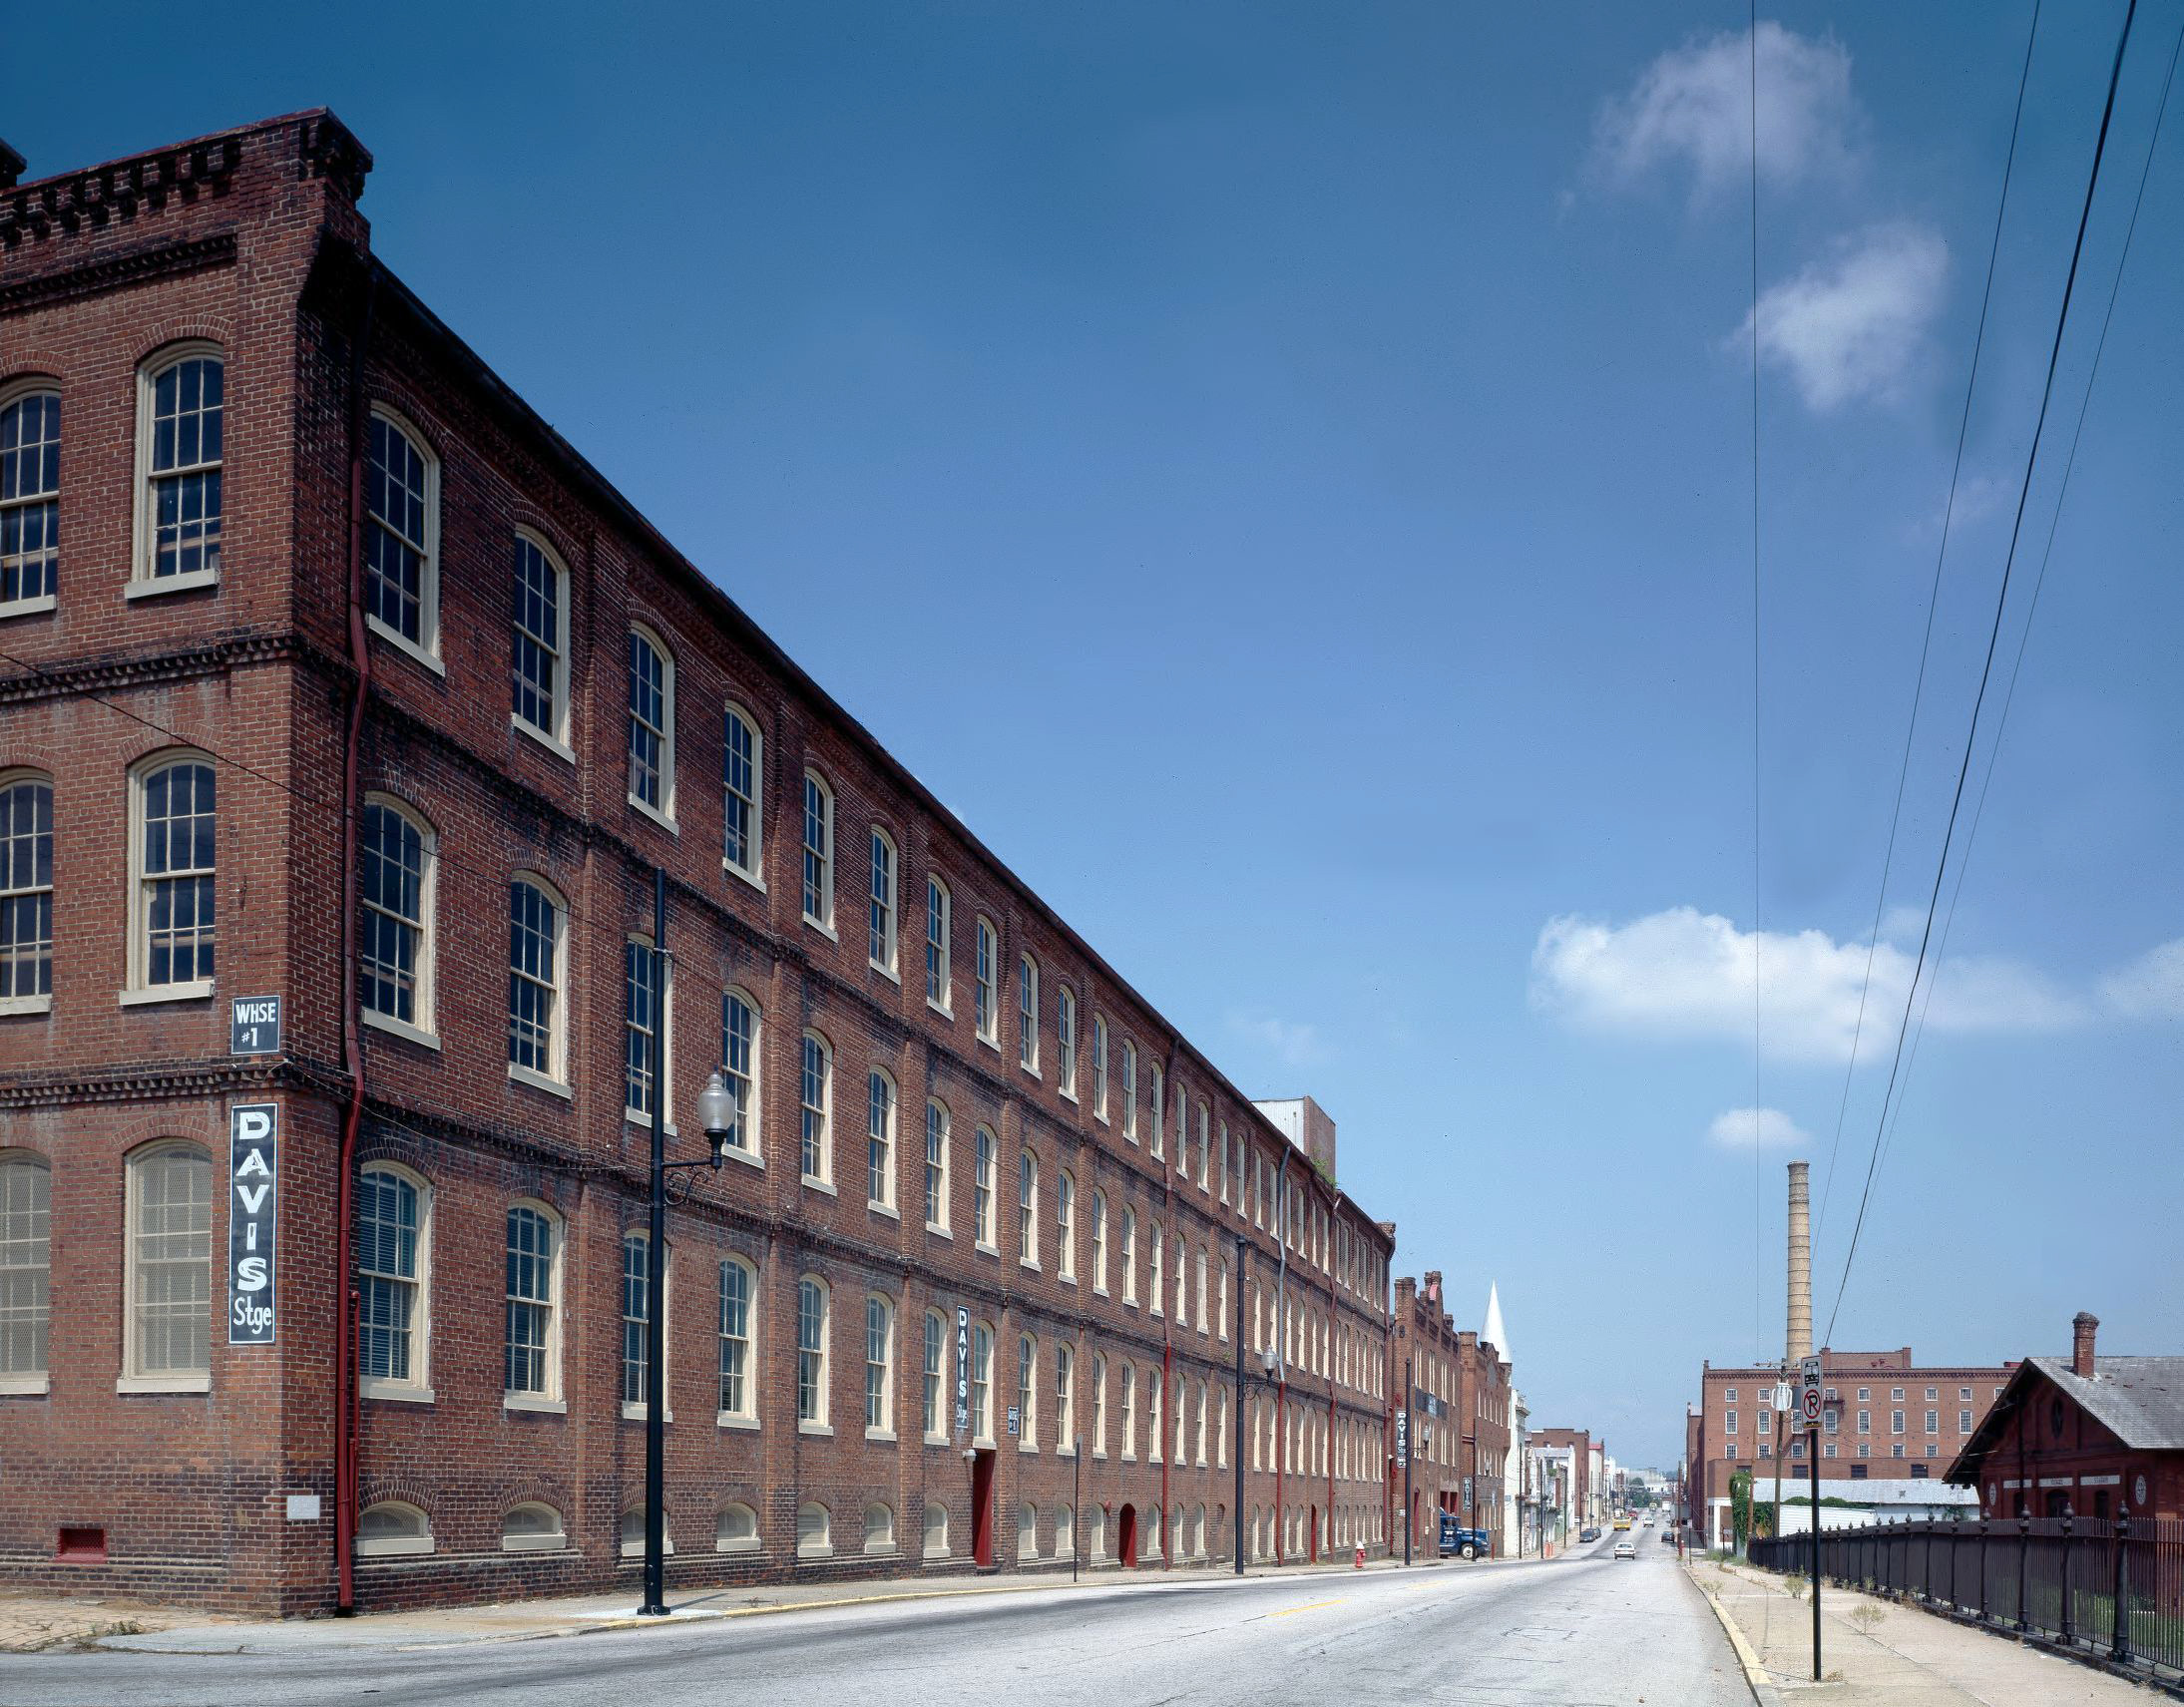 Danville Tobacco Warehouse and Residential District